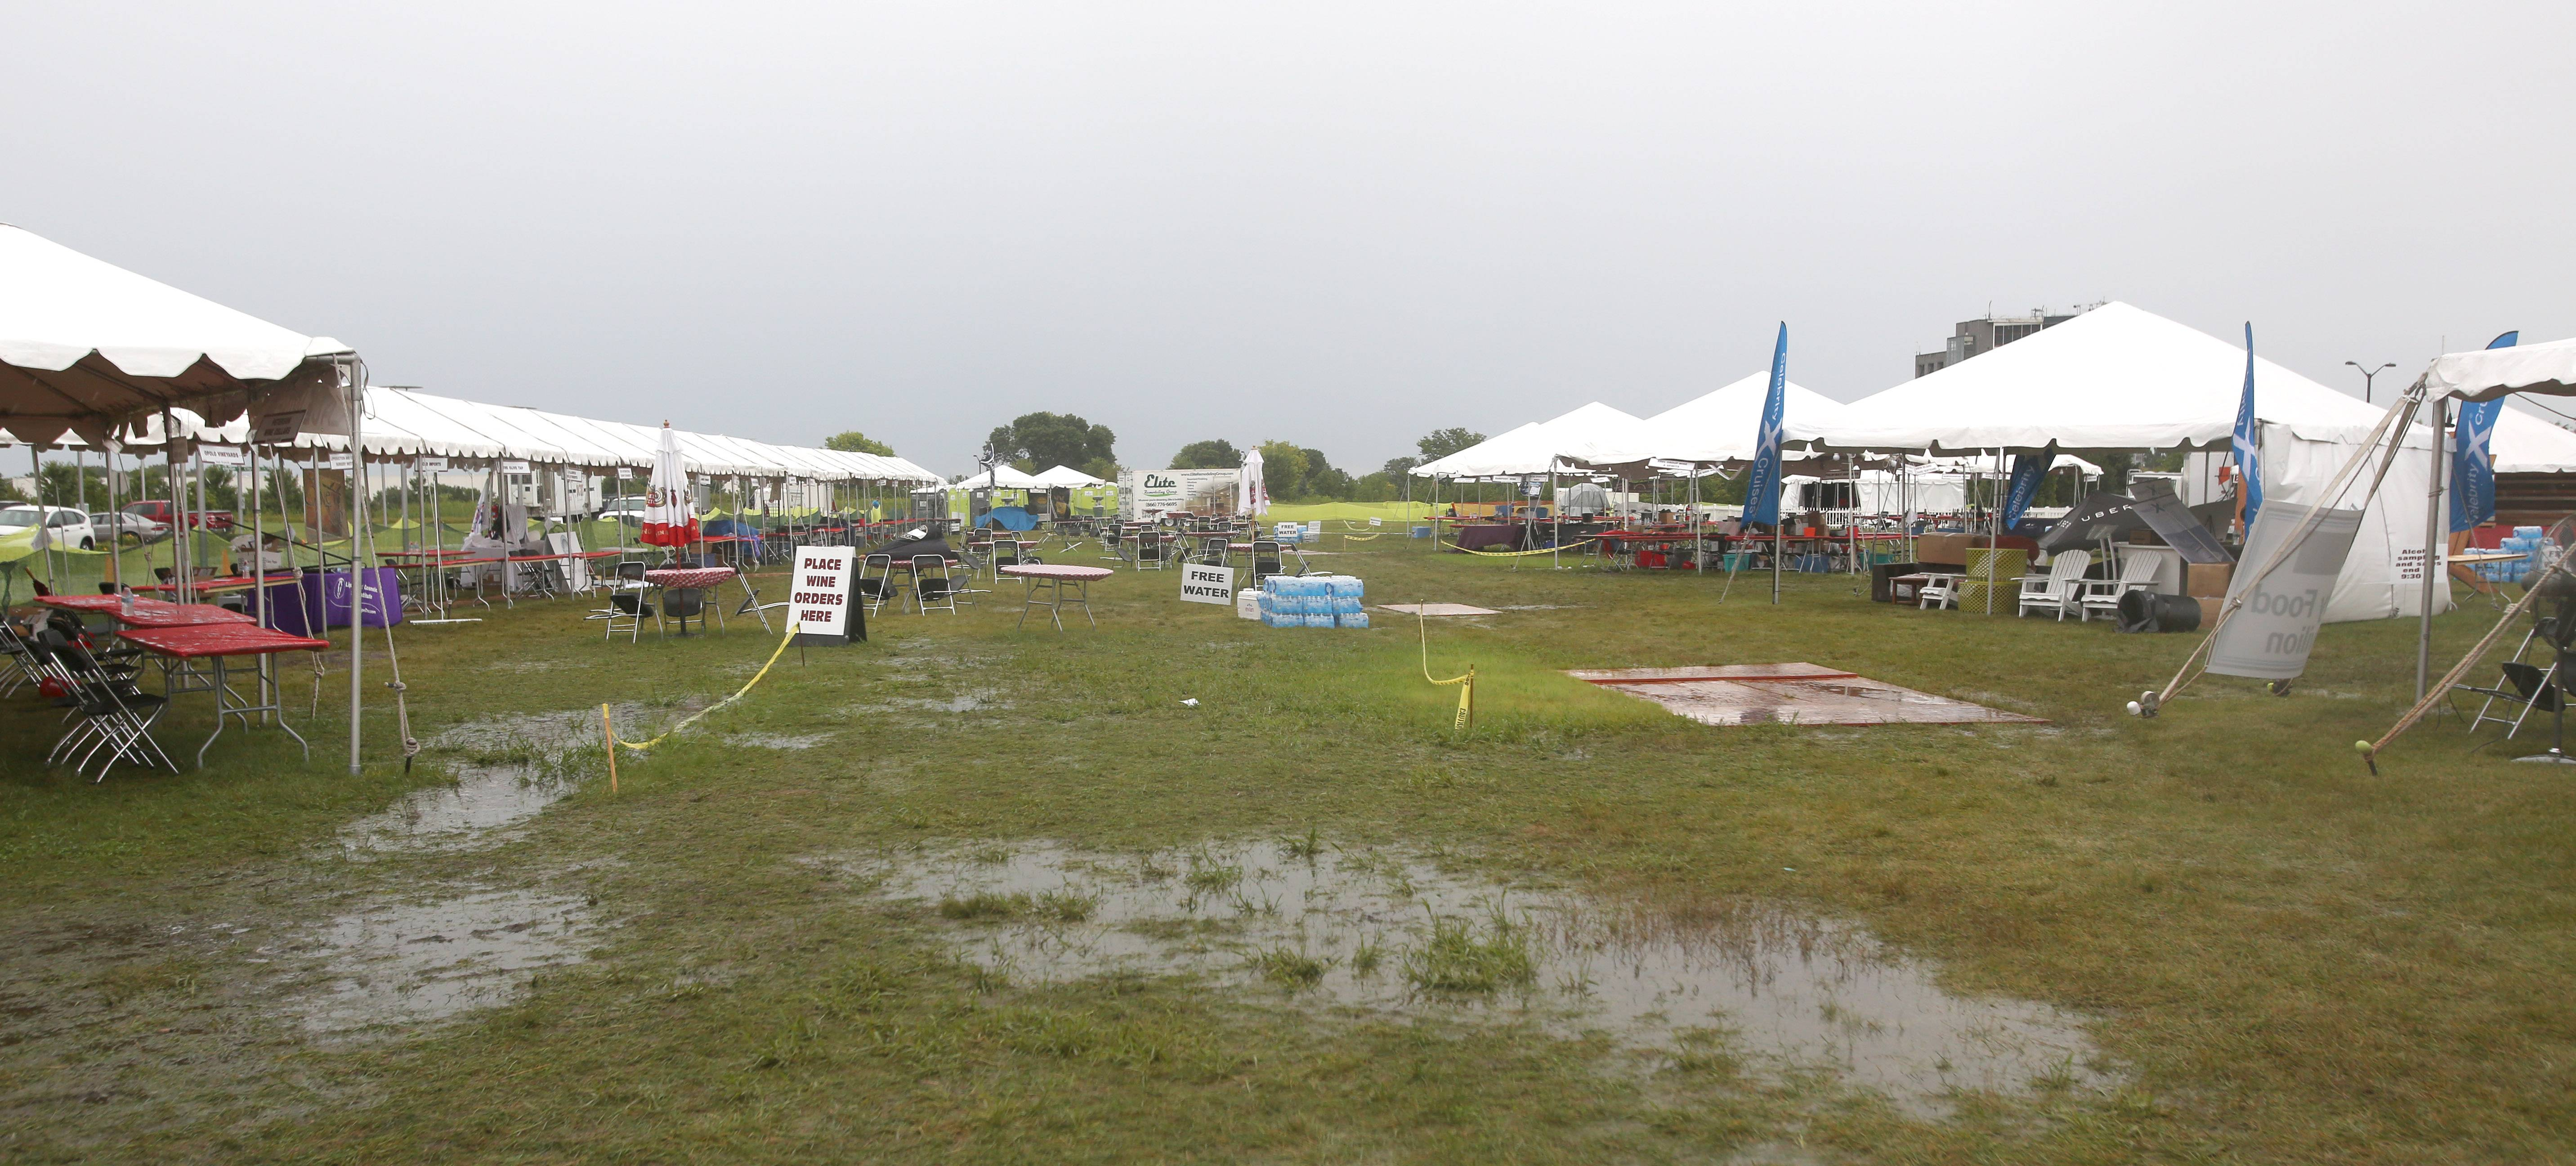 The 12th annual Naperville Wine Fest at the CityGate Centre was delayed two hours due to rainstorms.